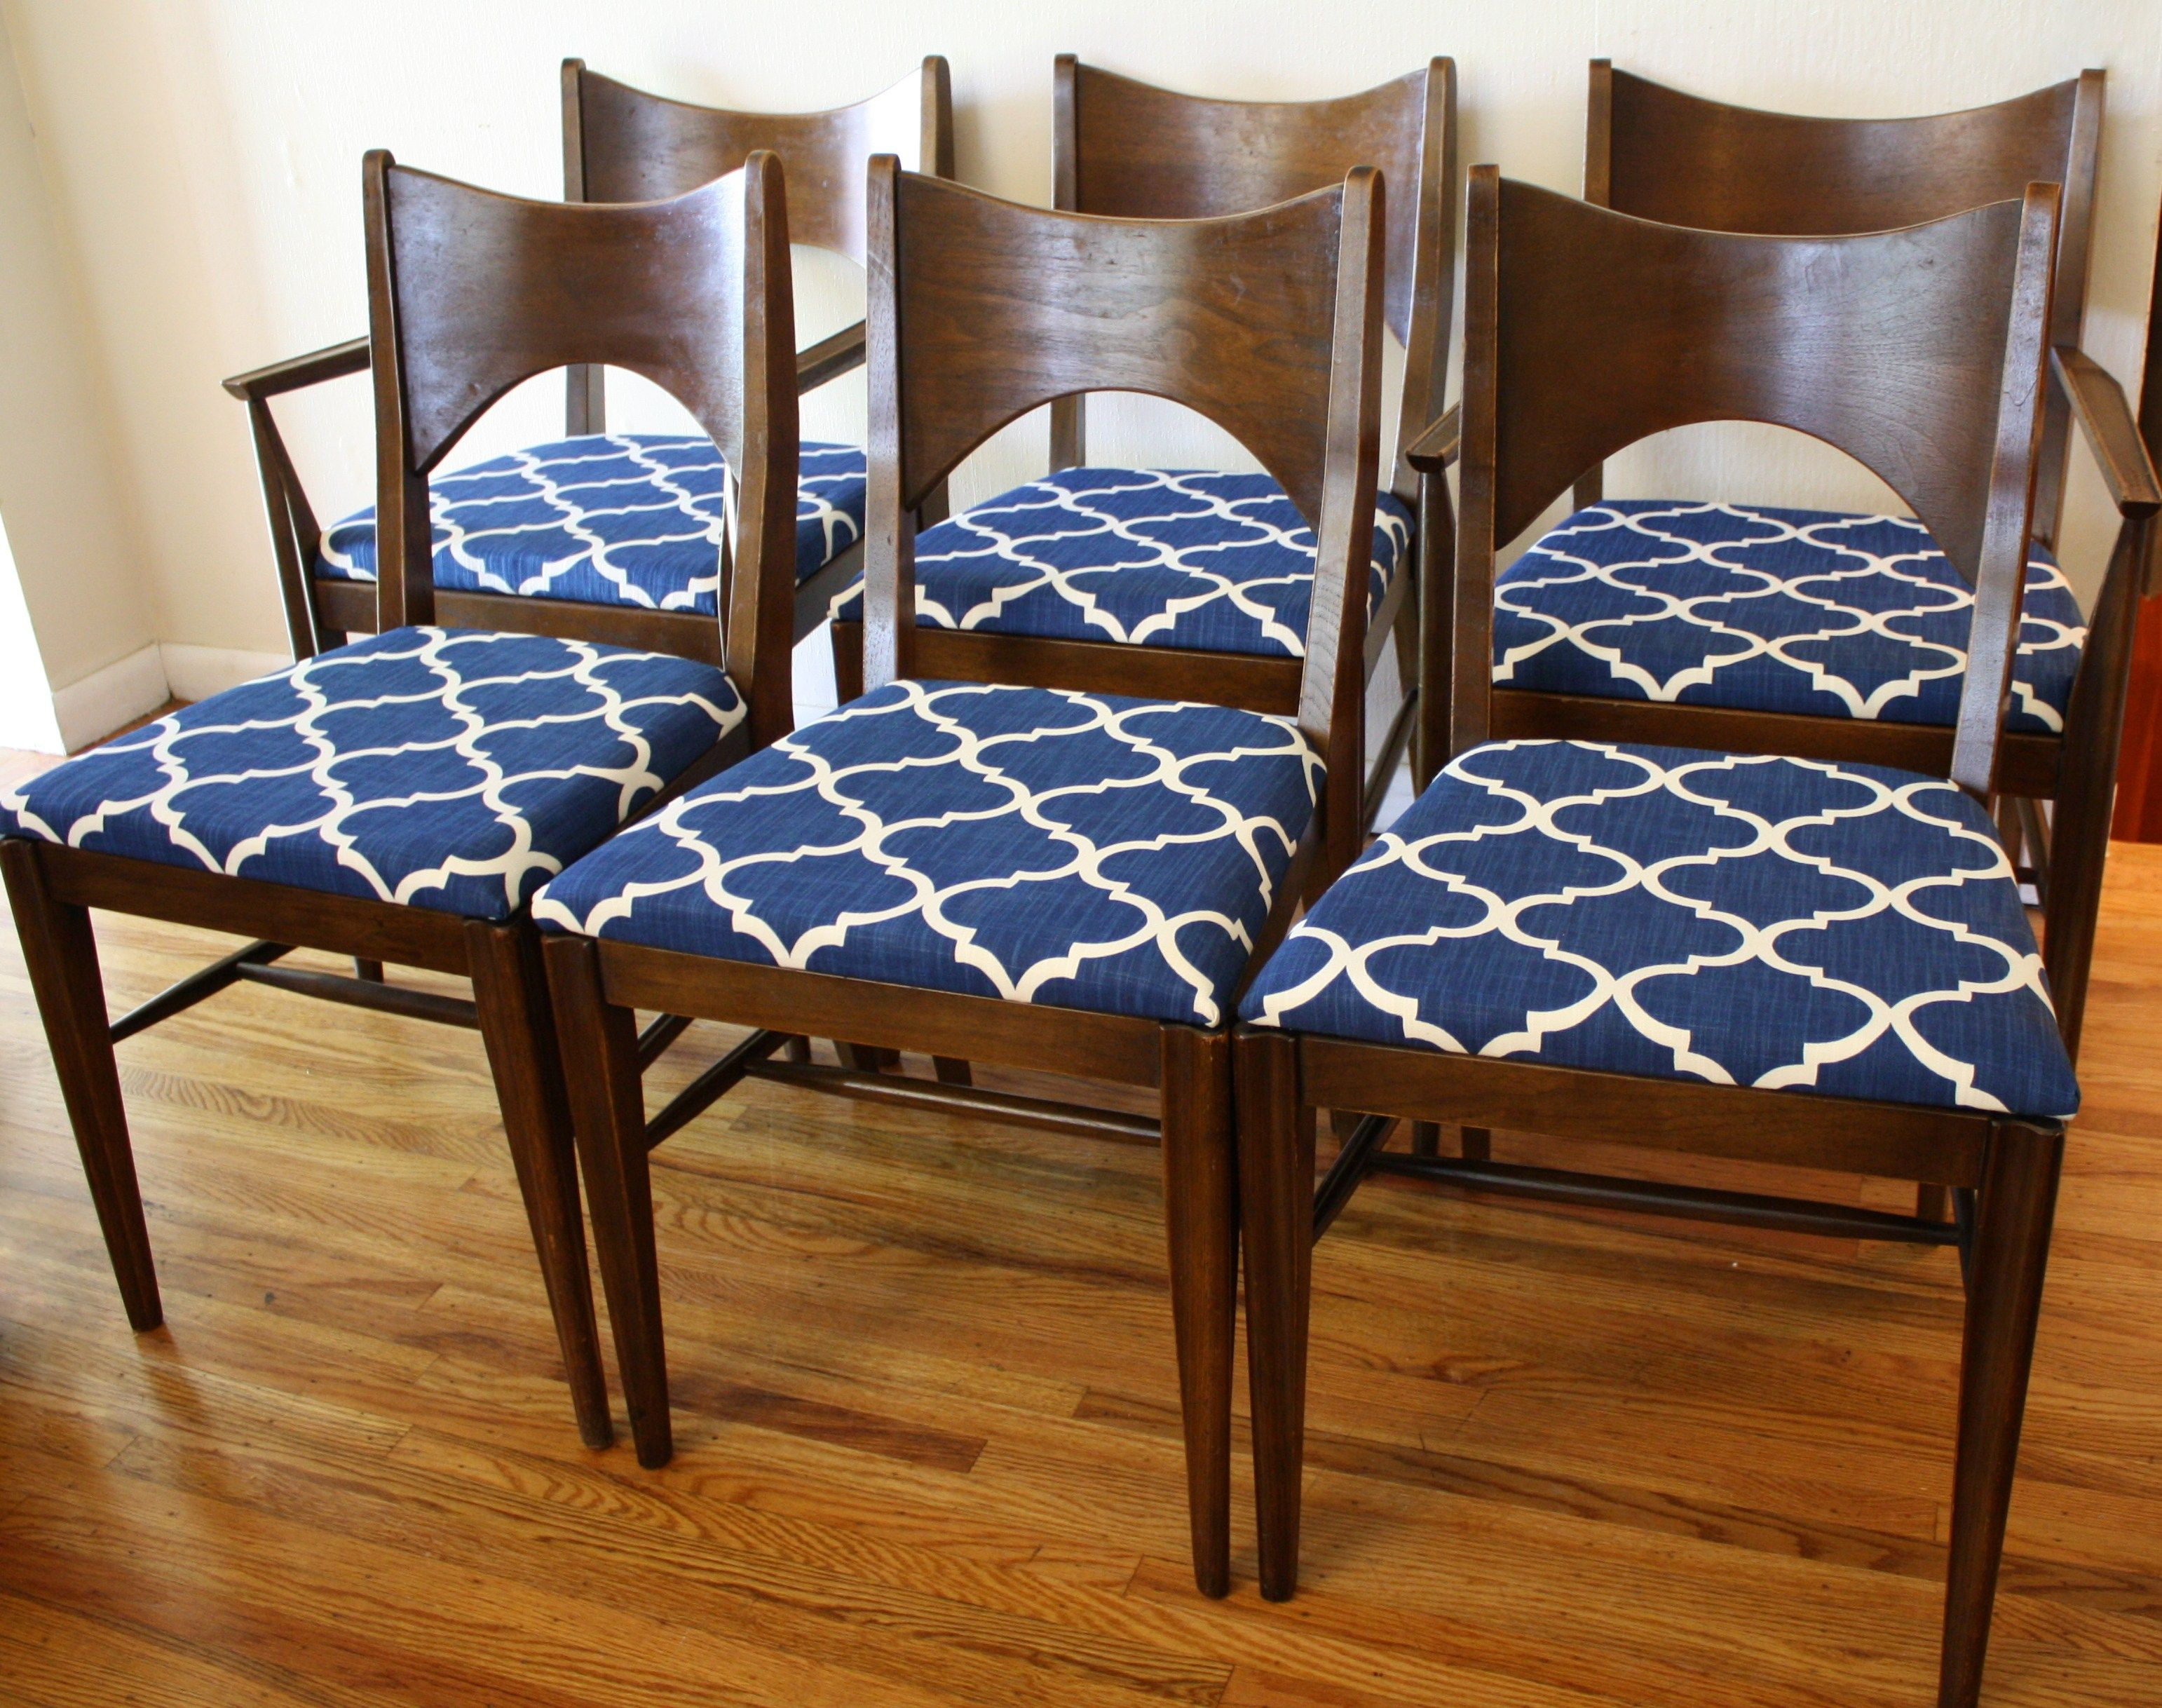 Dining Room Chair Fabric Ideas Fabric Dining Room Chairs